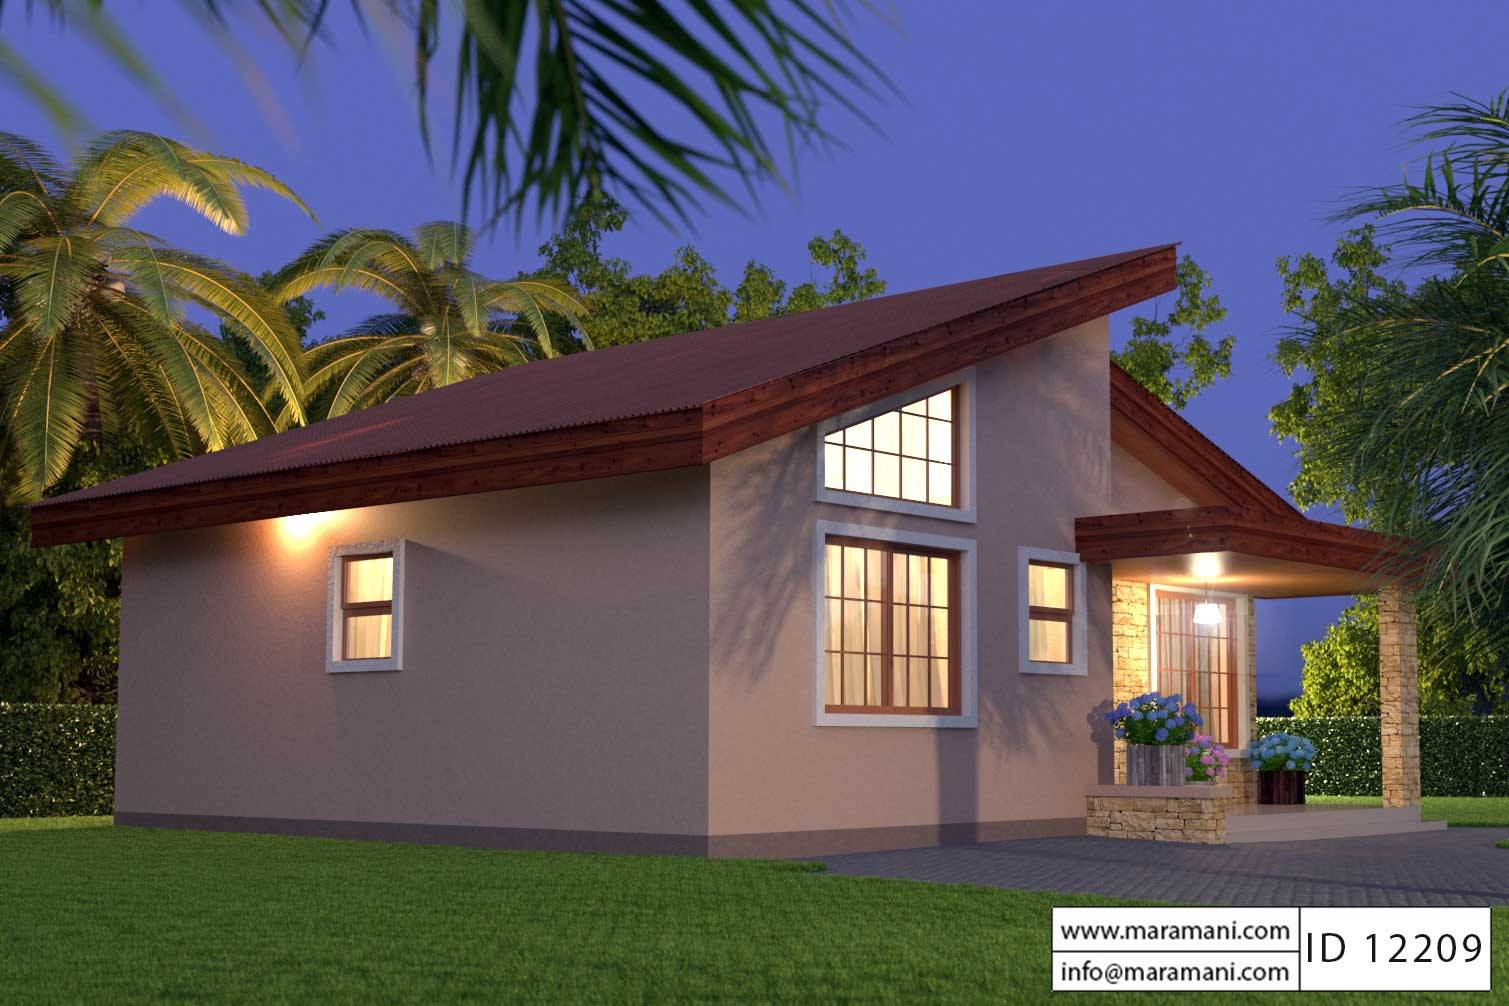 Two bedroom house id 12209 for 2 bedroom house plans